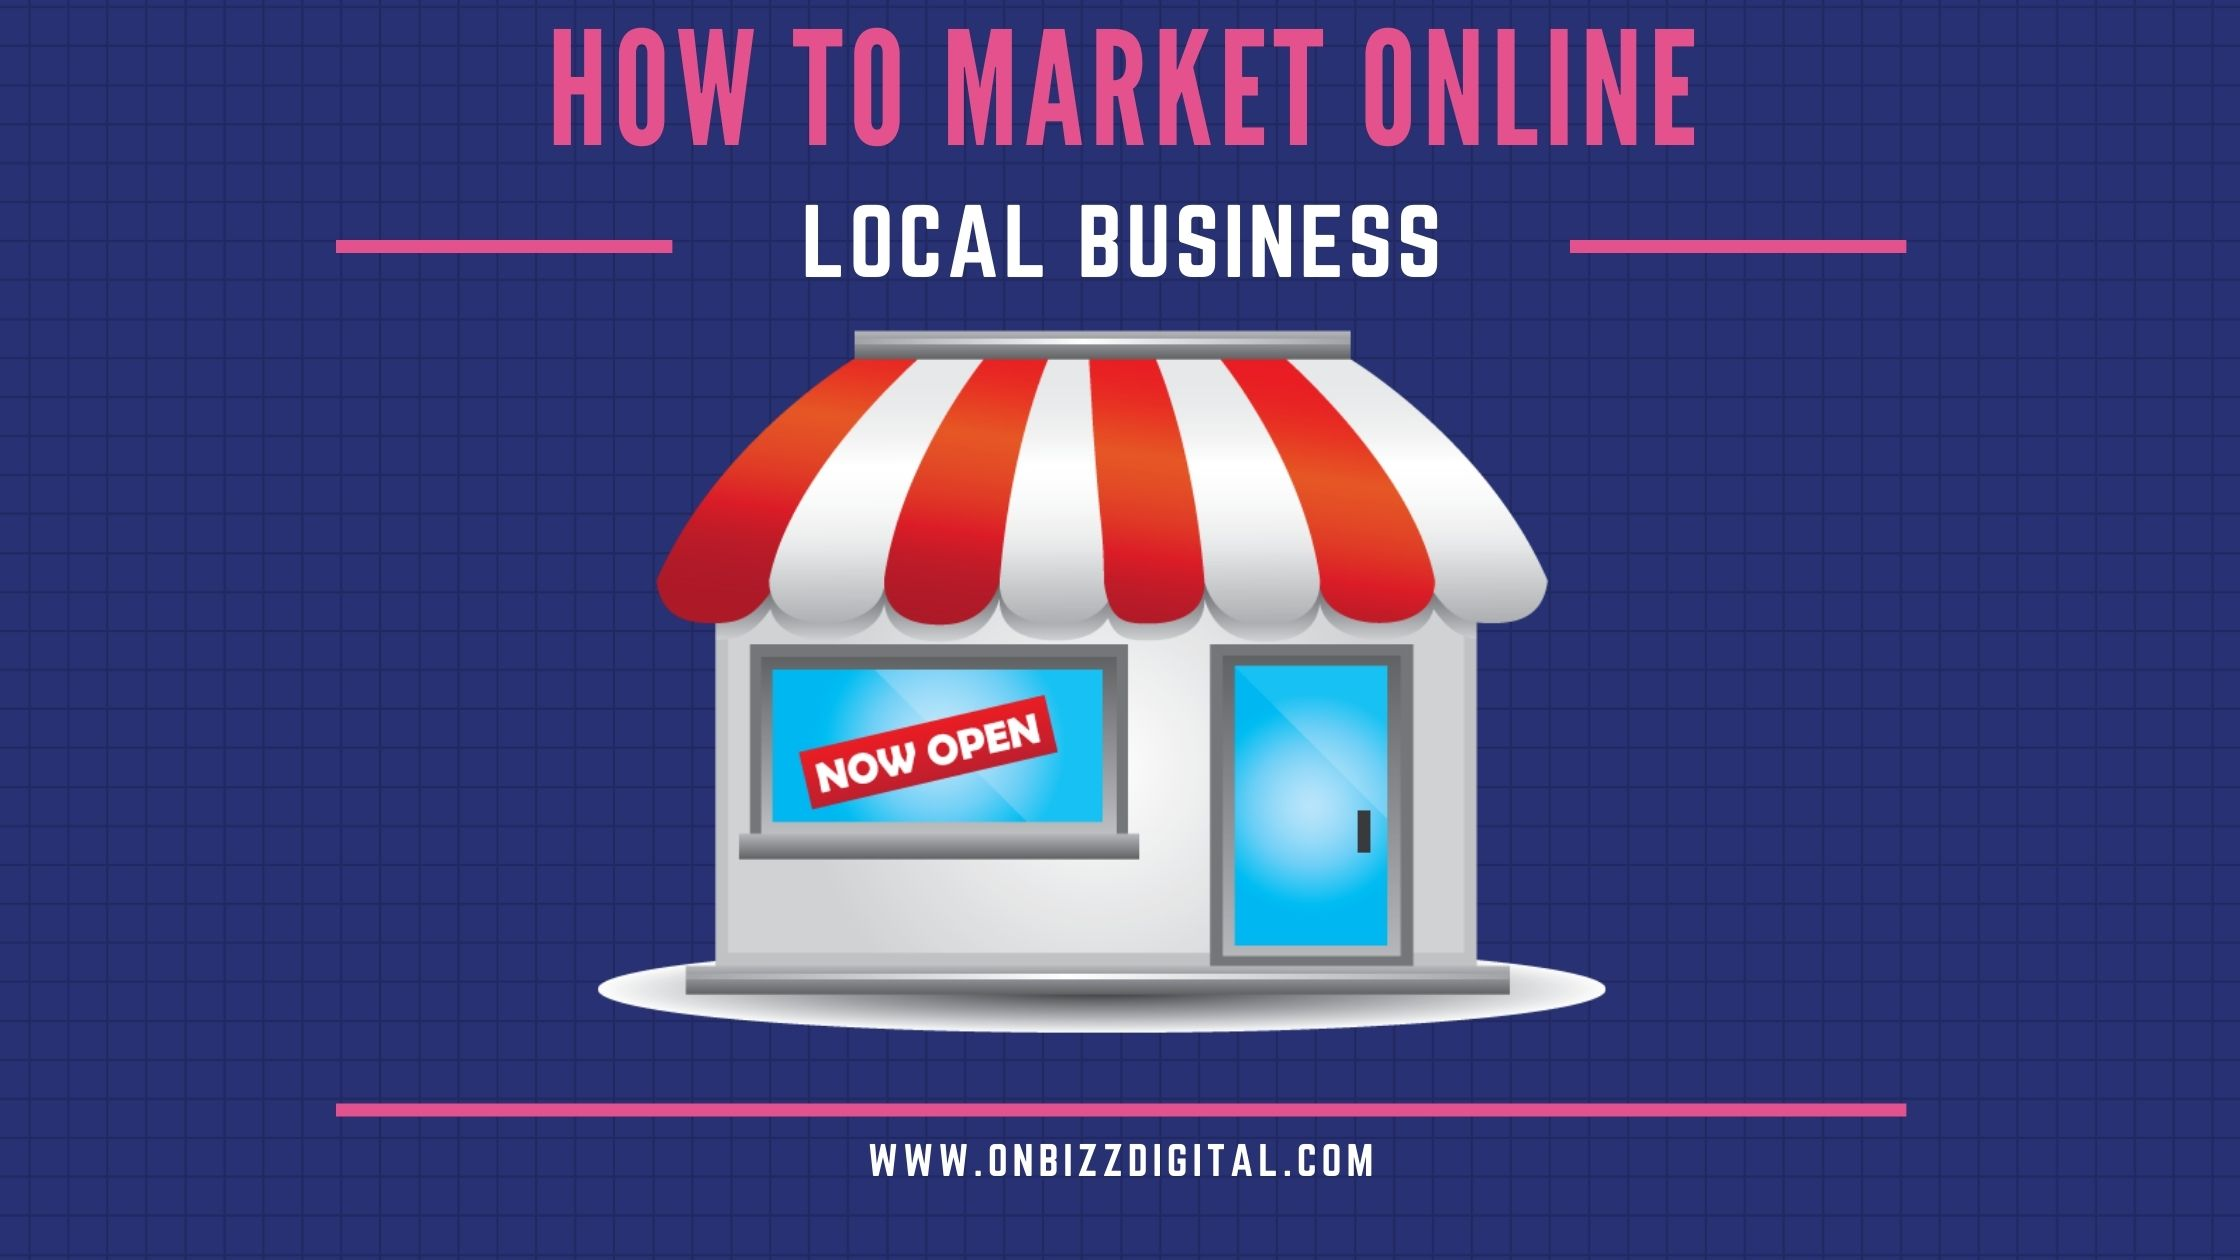 Market local business online